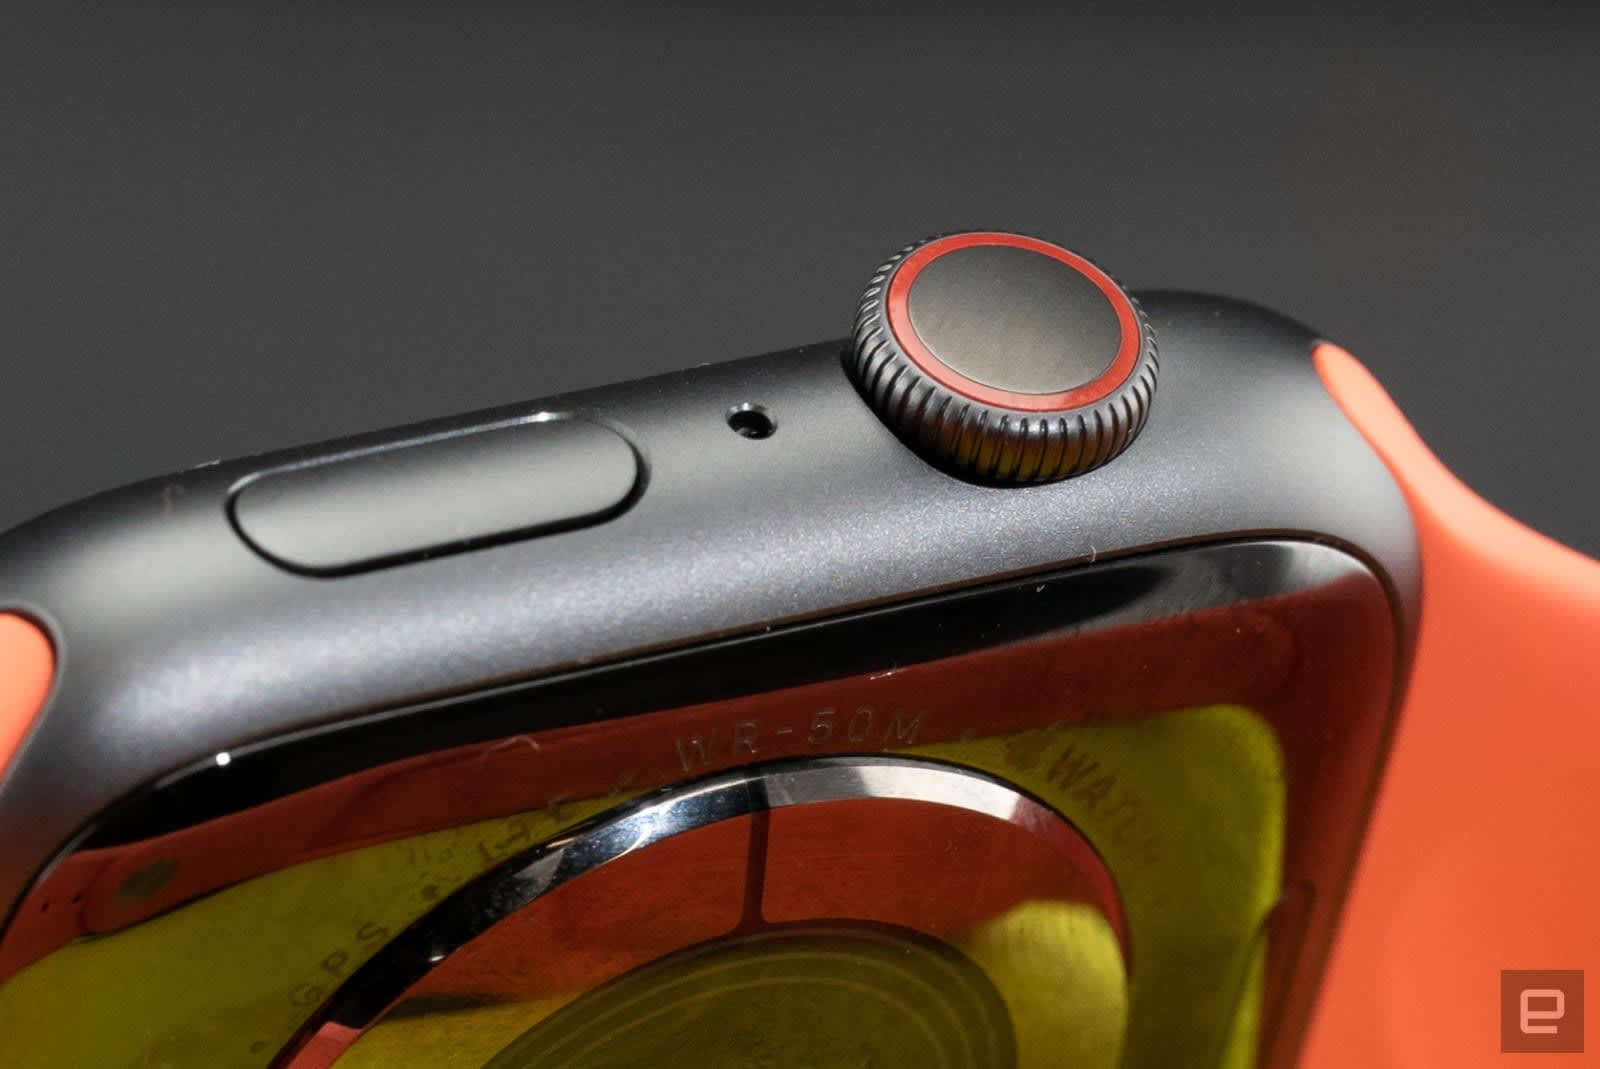 The next Apple Watch may come in titanium and ceramic models